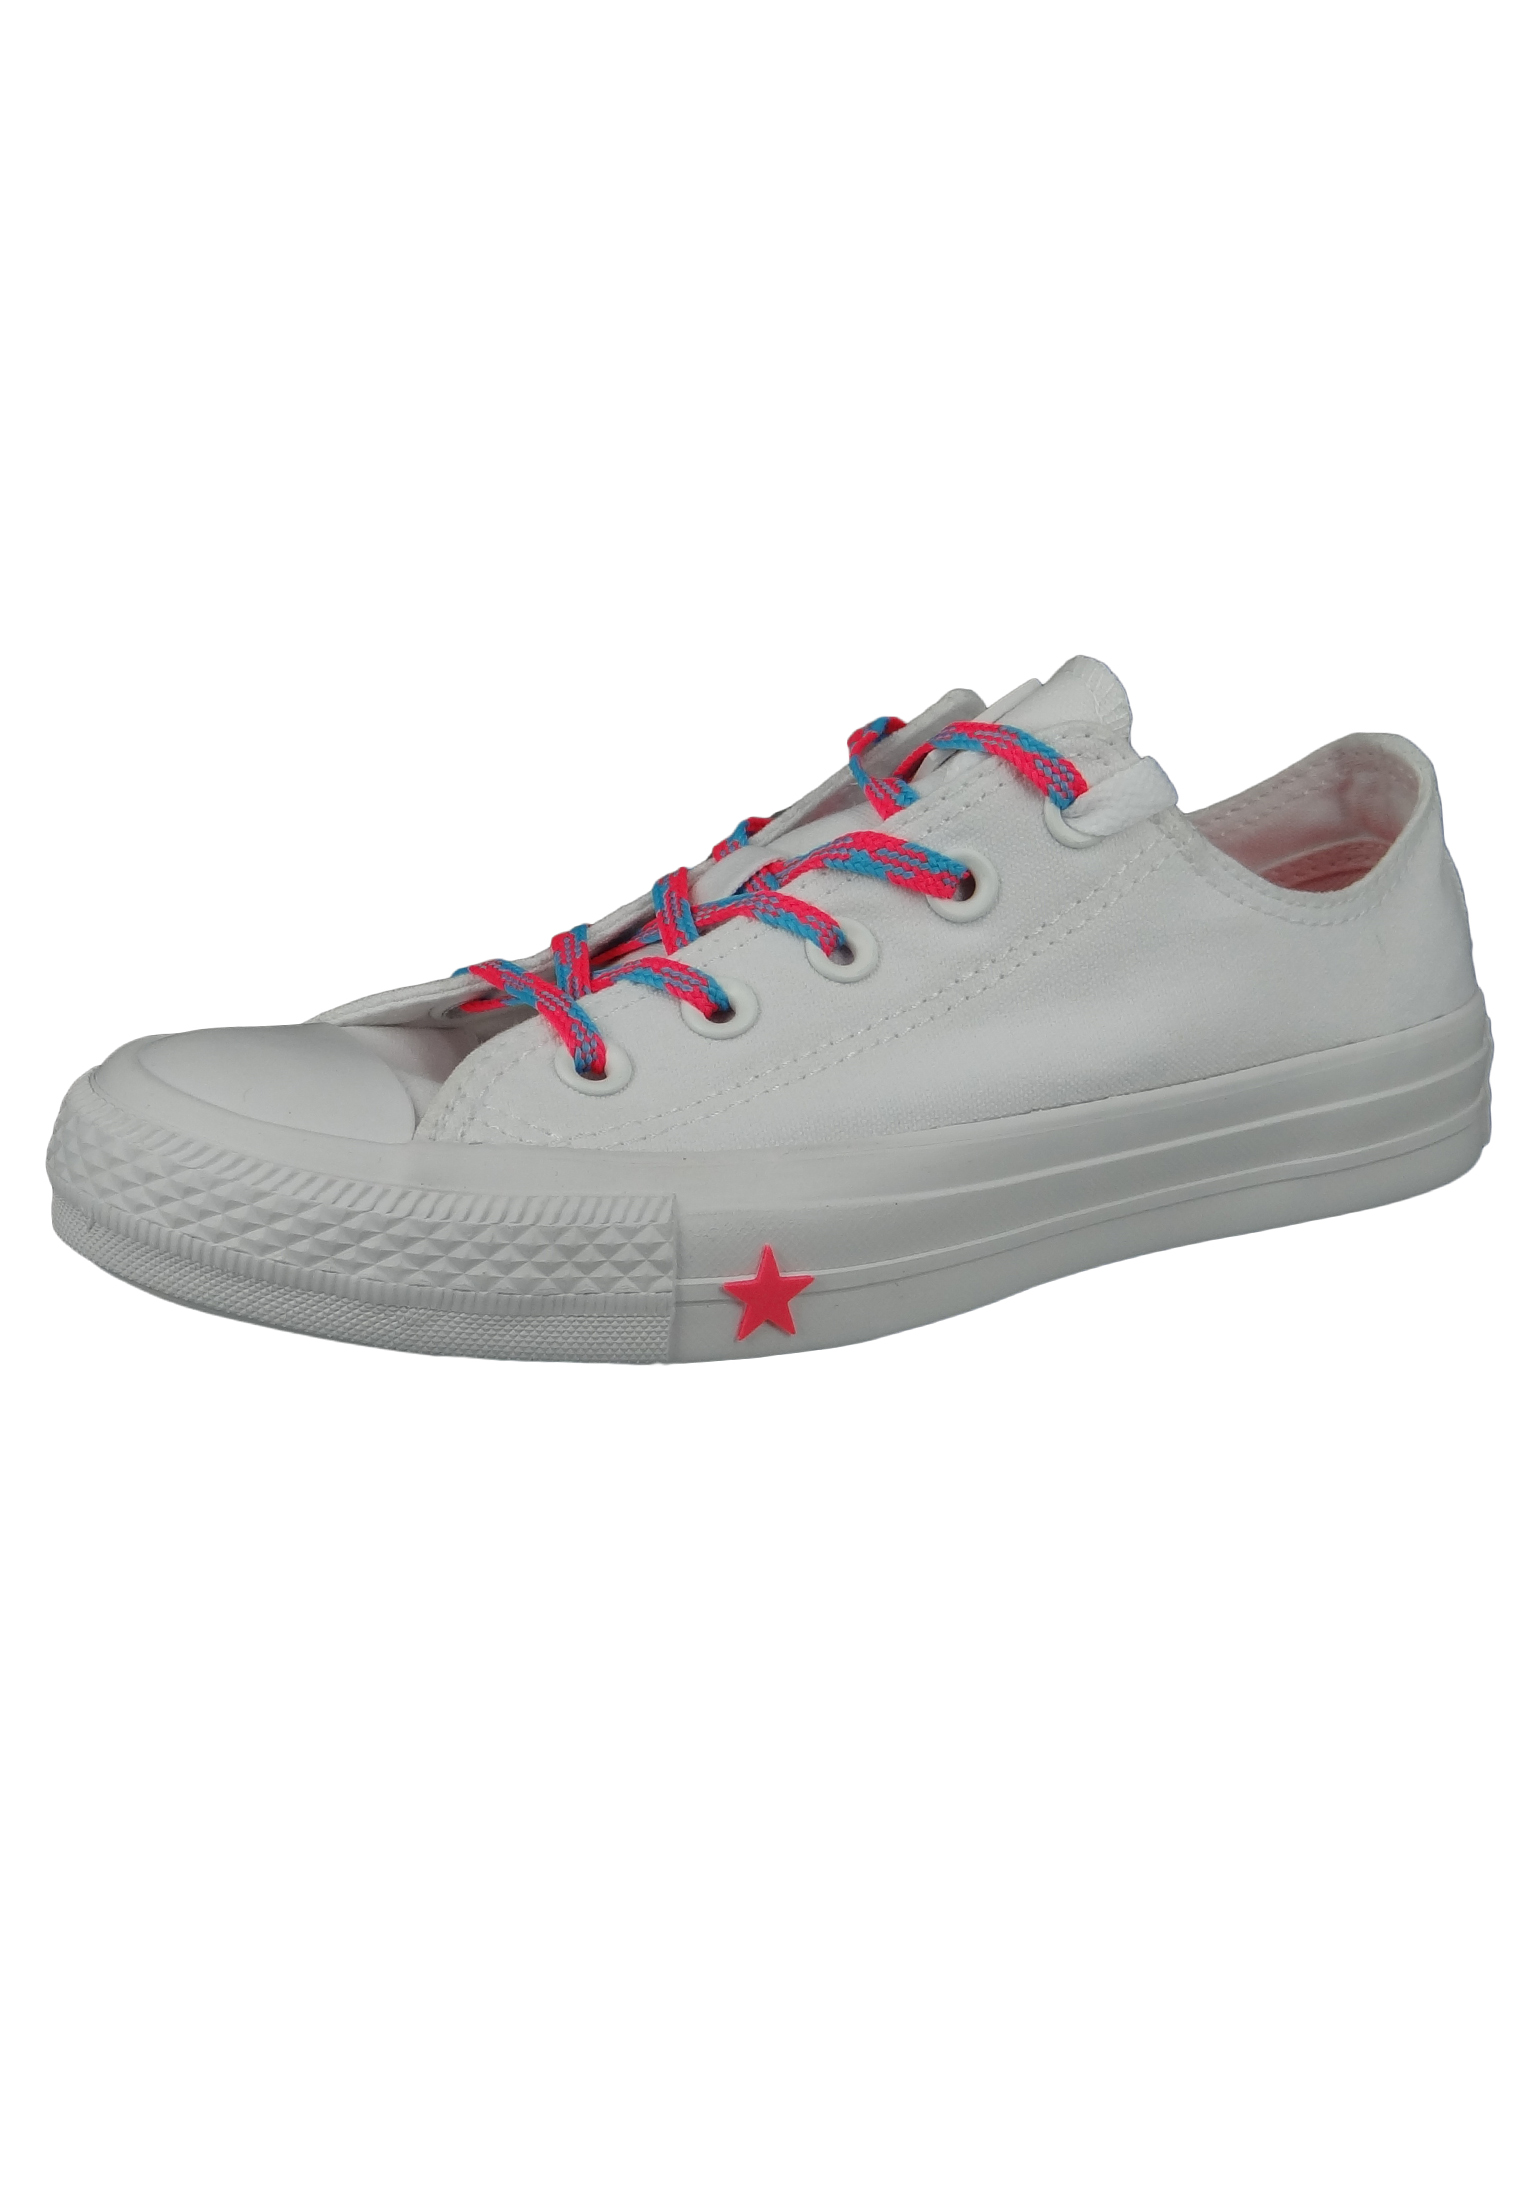 Converse Chucks Weiss 564117C Chuck Taylor All Star OX White Racer Pink Gnarly Blue